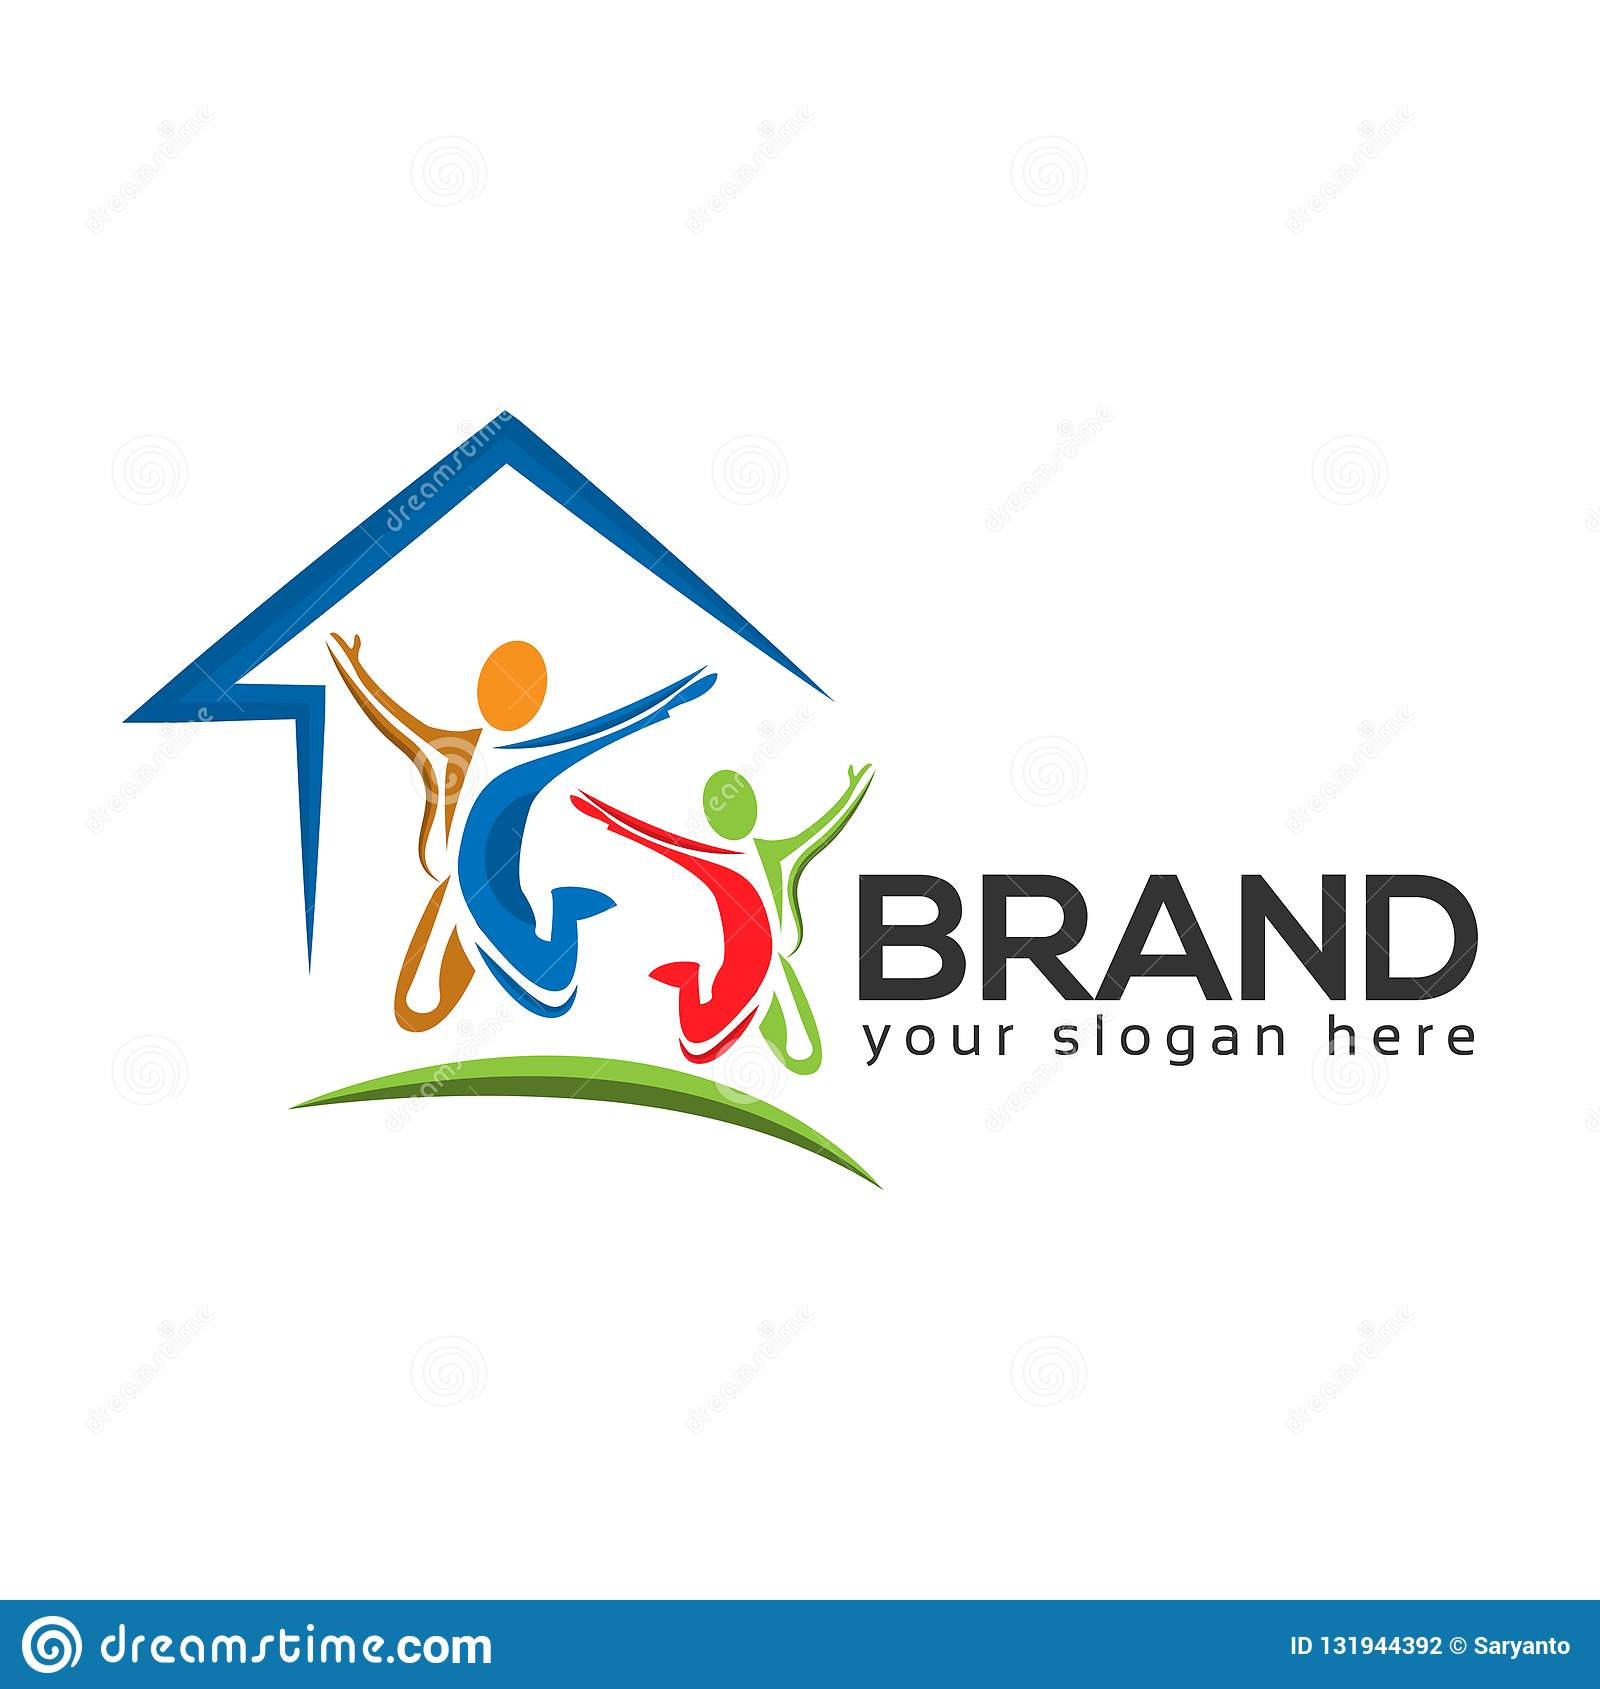 House and people Logo Design Vector, Vector illustration on white background.